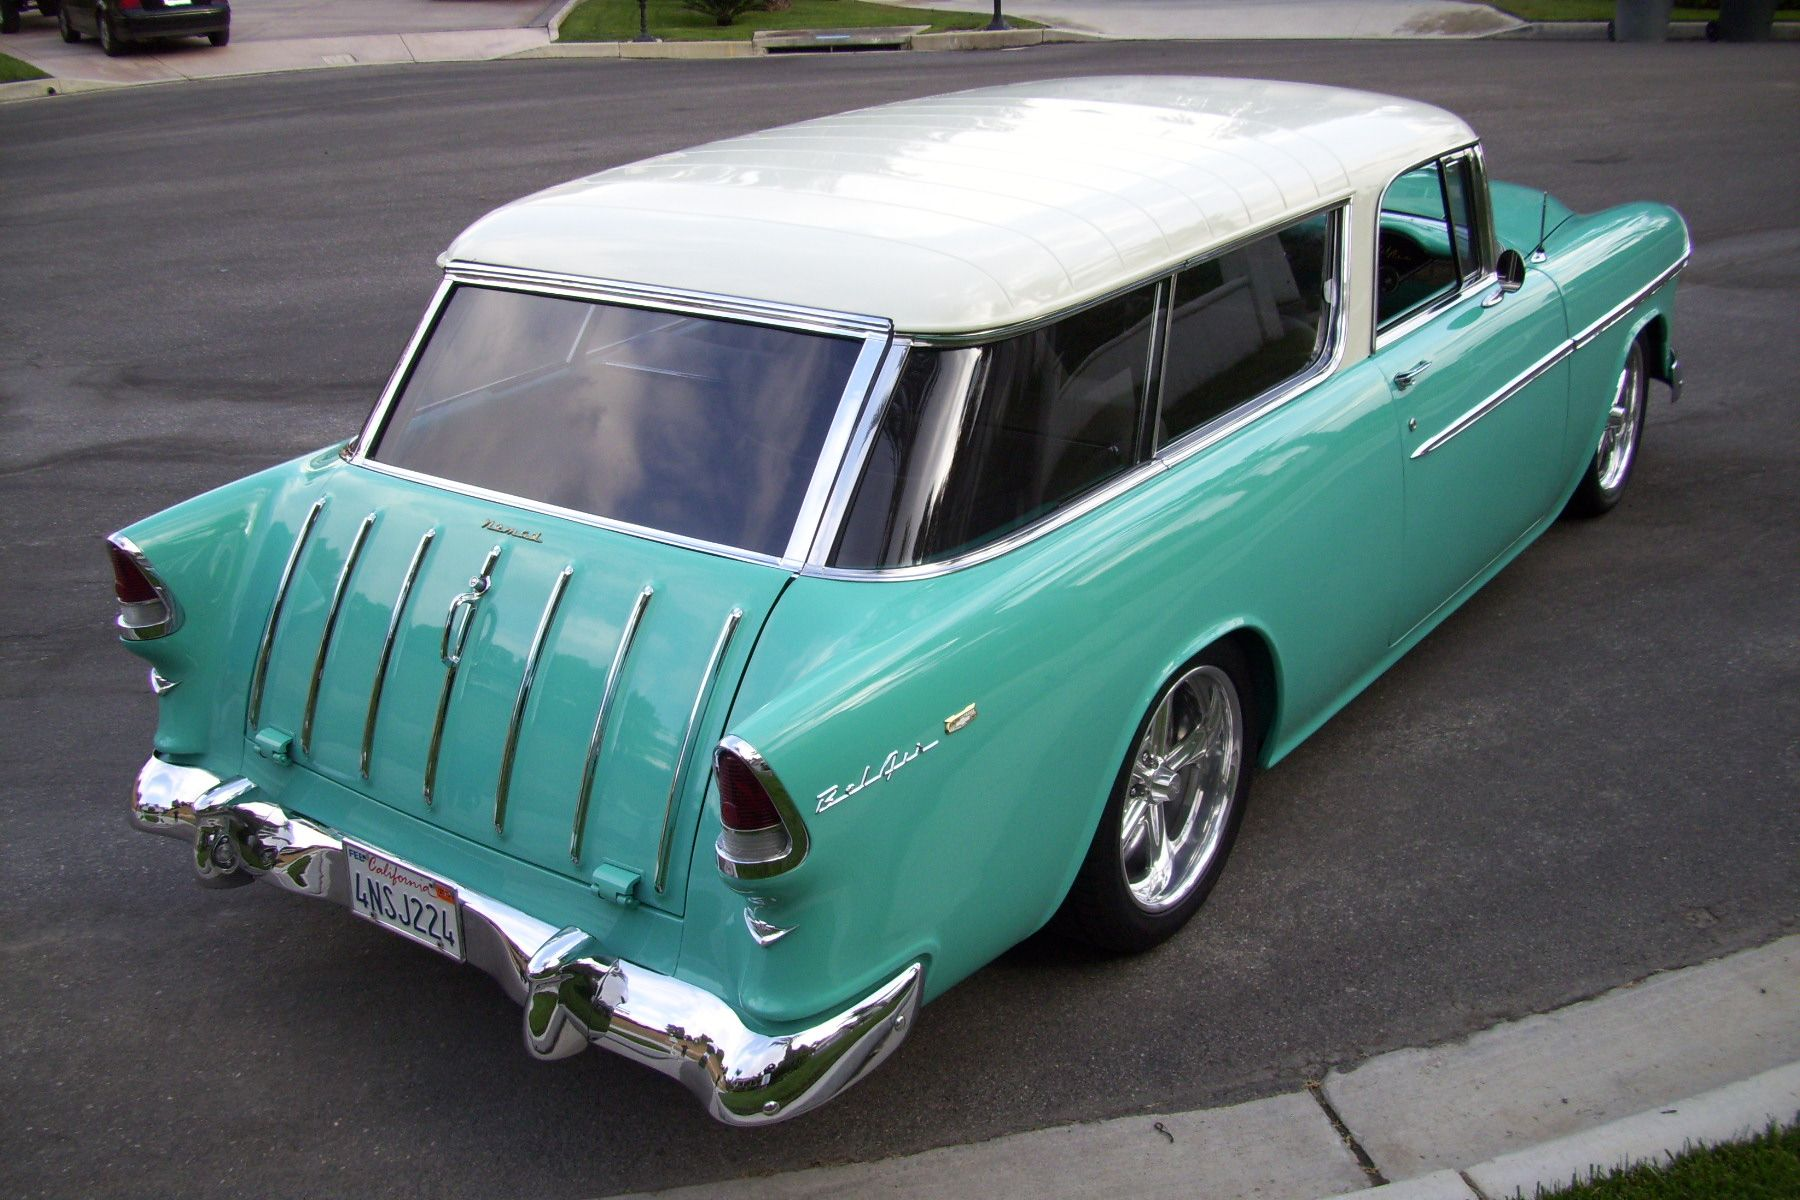 55 Chevy Nomad Classic Cars Cool Old Cars Chevy Nomad